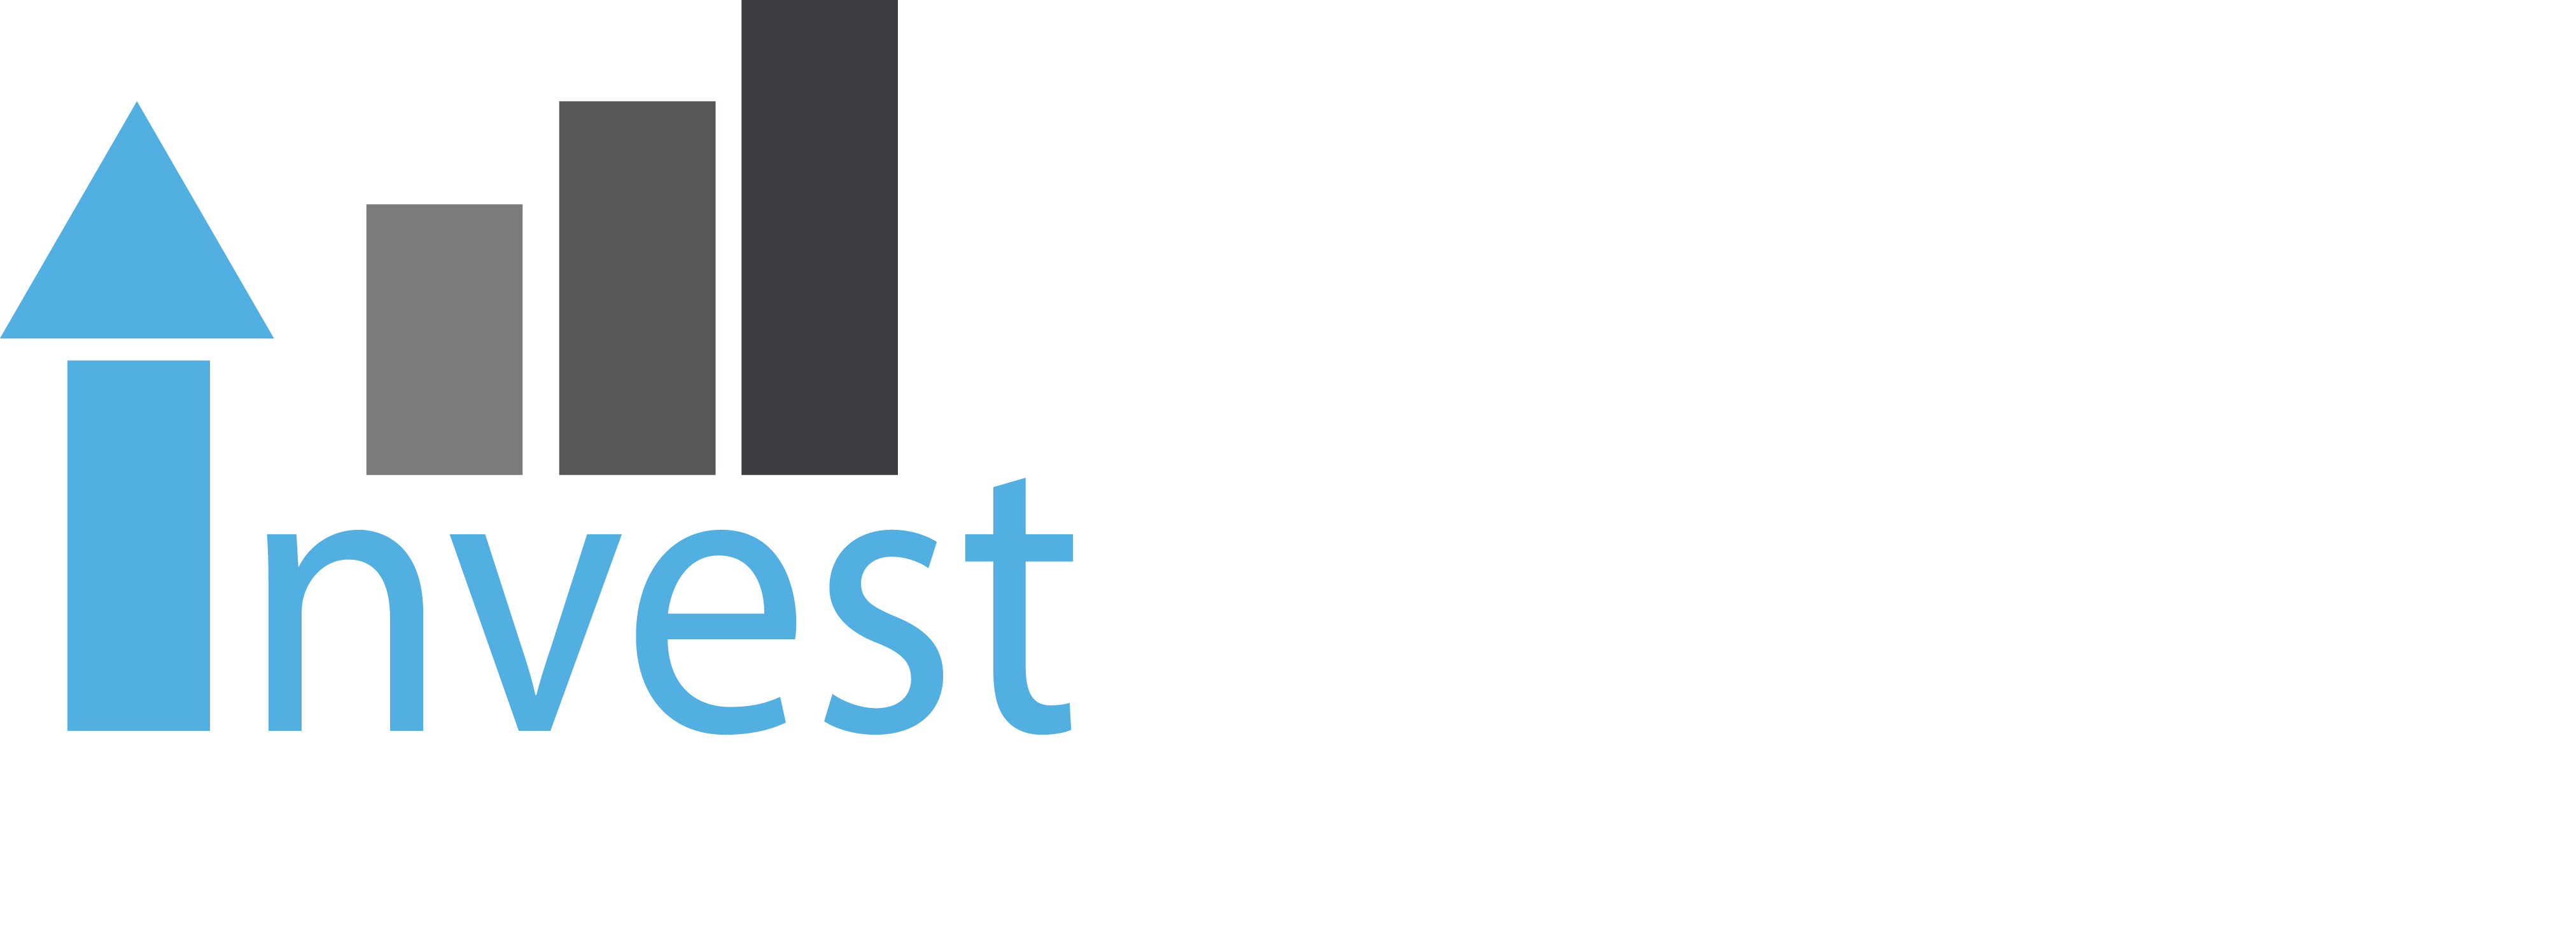 InvestHomePro logo in footer